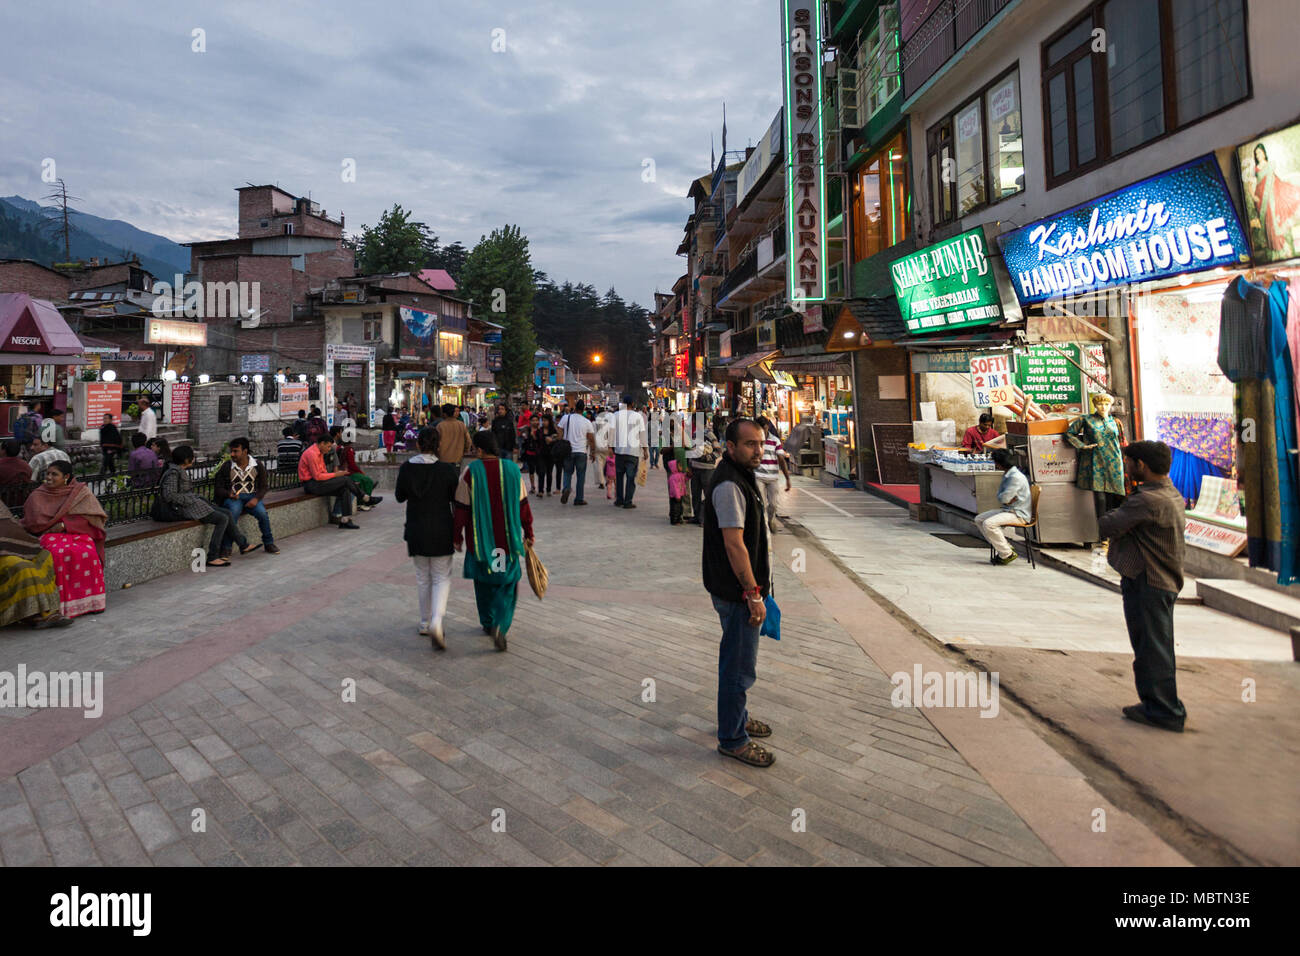 MANALI, INDIA - SEPTEMBER 21: Mall Street is a main street in Manali on September 21, 2013, Manali, India. Manali is a very popular hill station in In Stock Photo